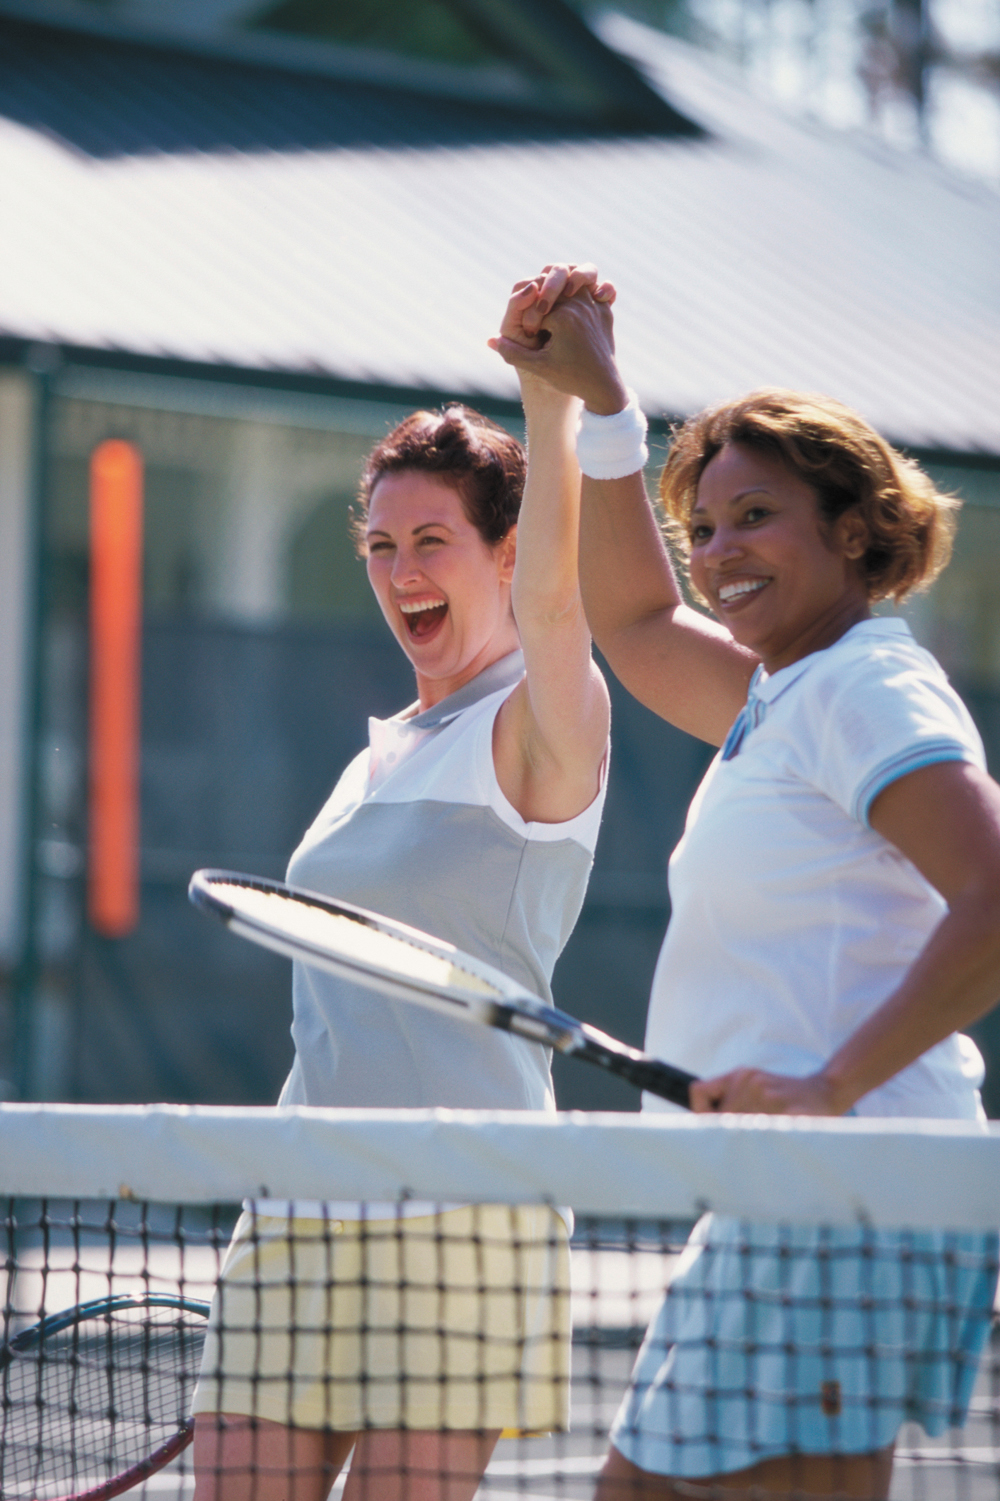 Want to win more? Try the P/P=W tennis equation